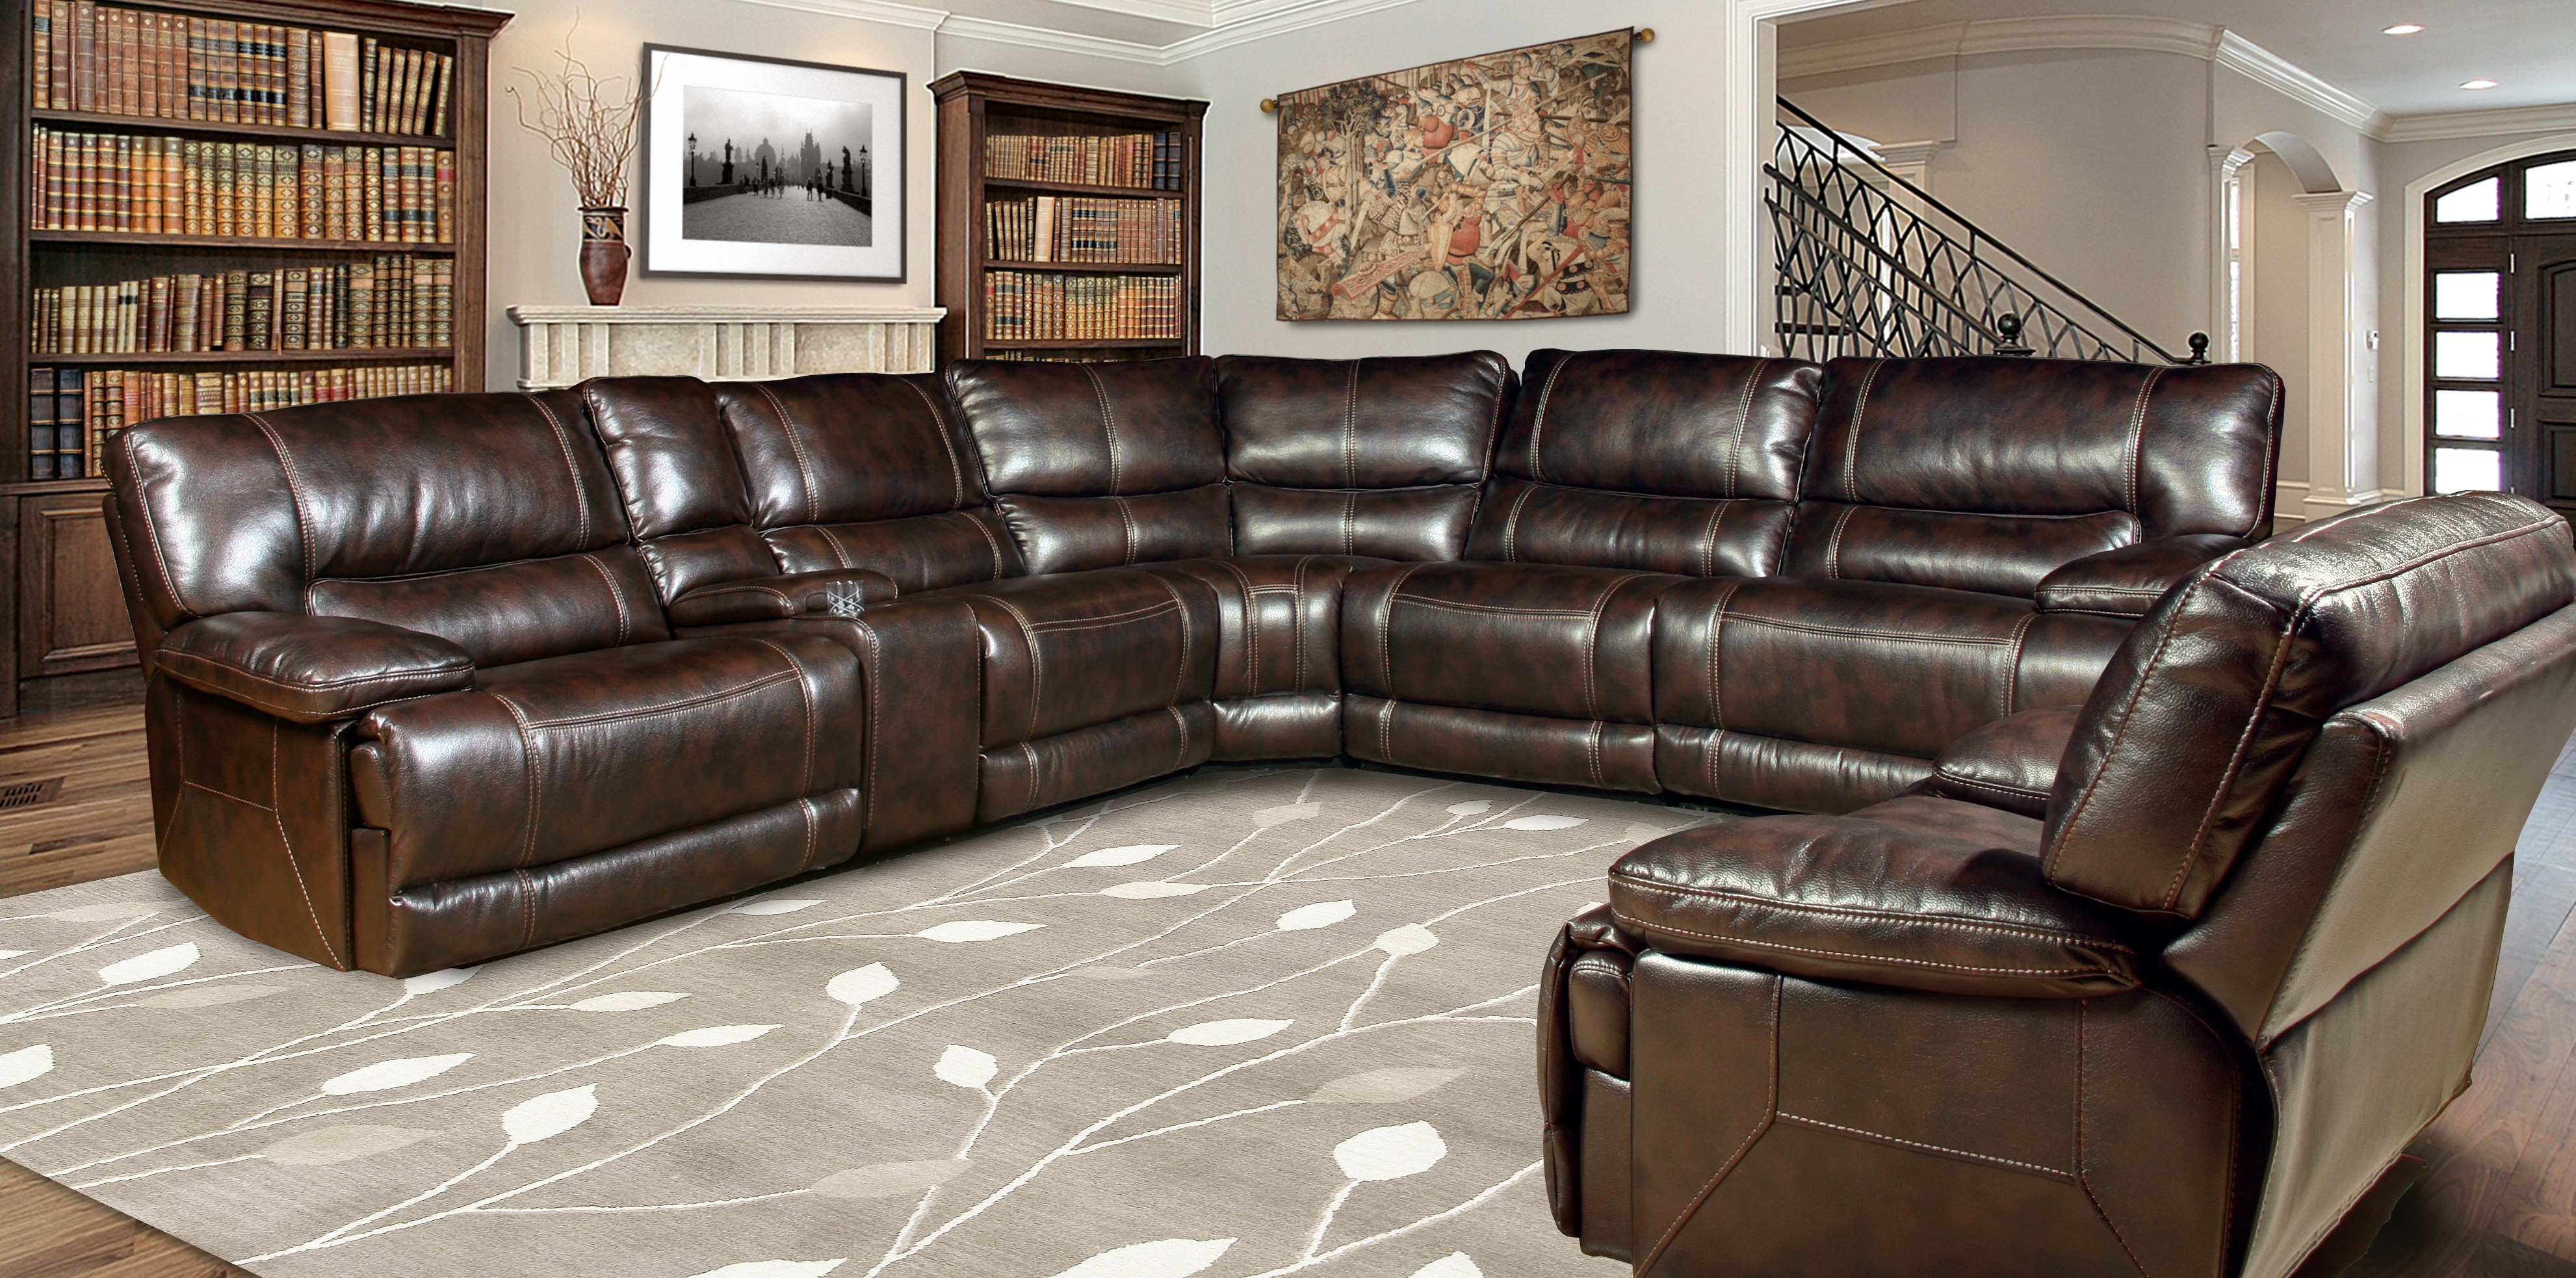 billwedge htm canyon sectional ashley from furniture leather reclining coleman raf